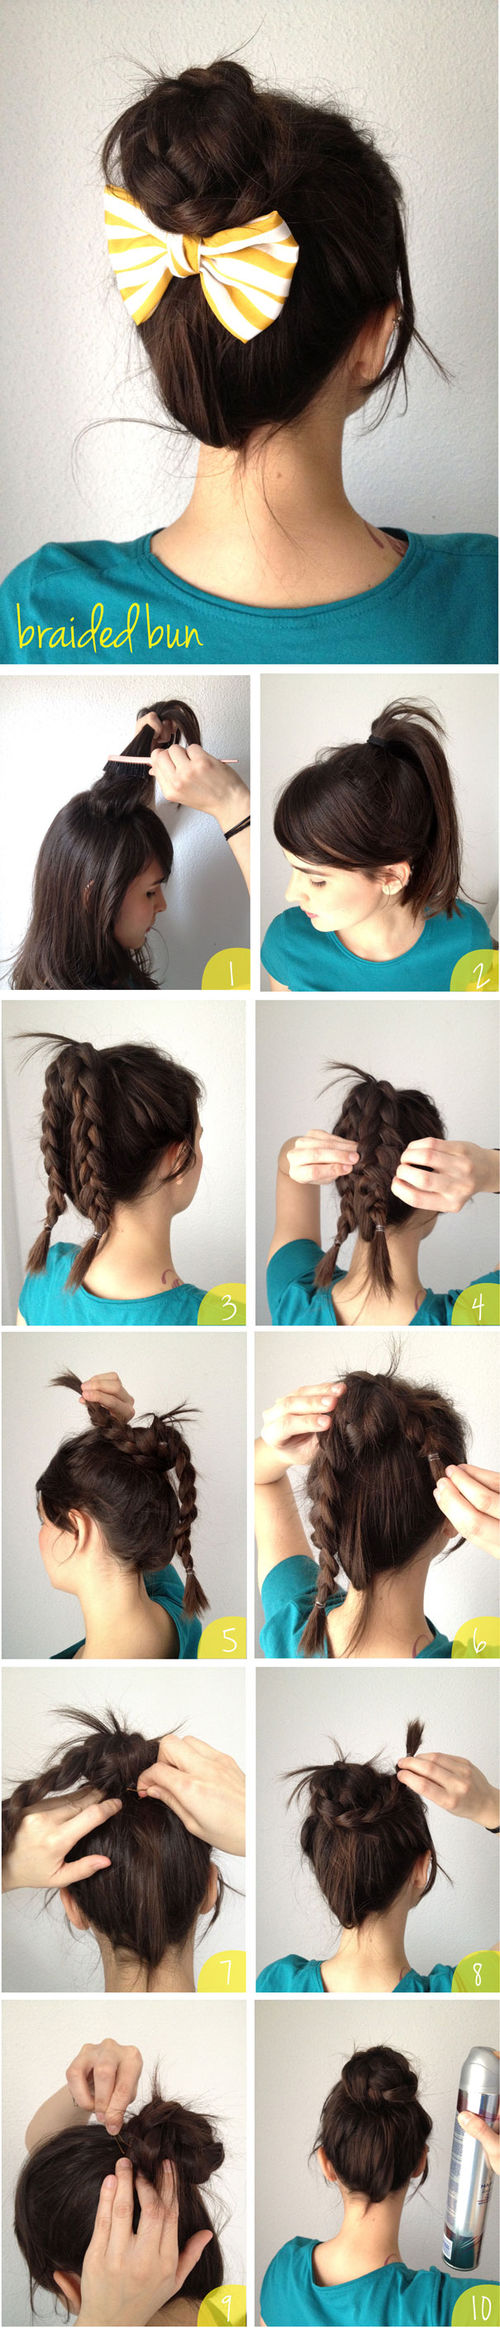 Braided-bun_large